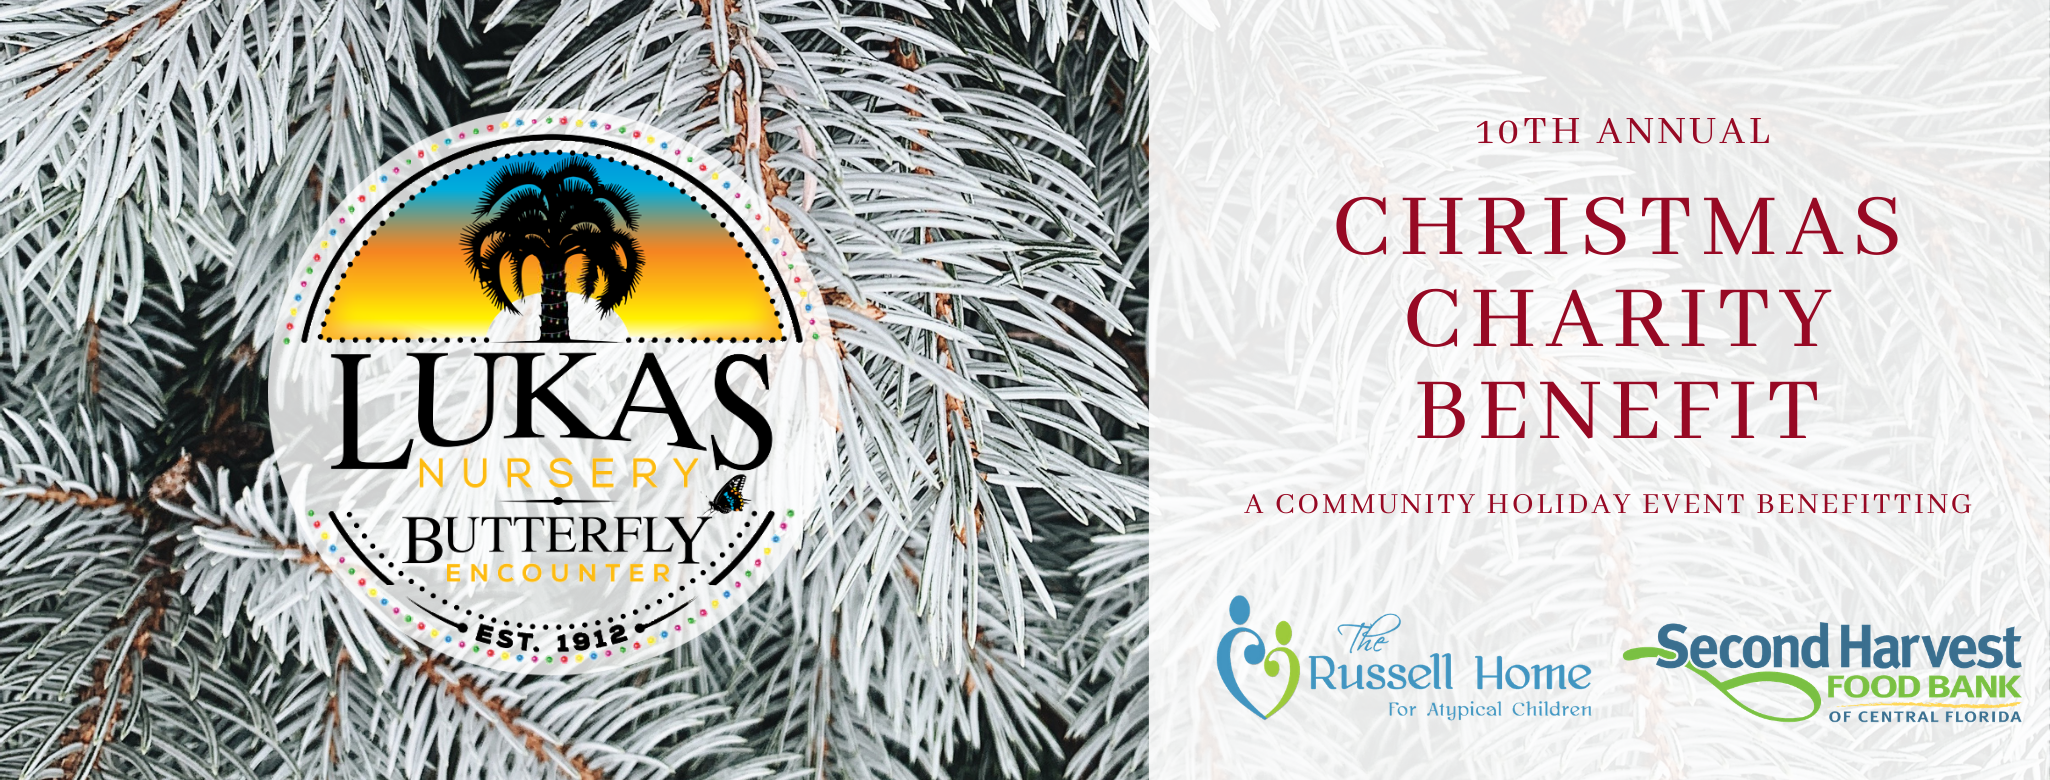 10th Annual Christmas Charity Banner 2